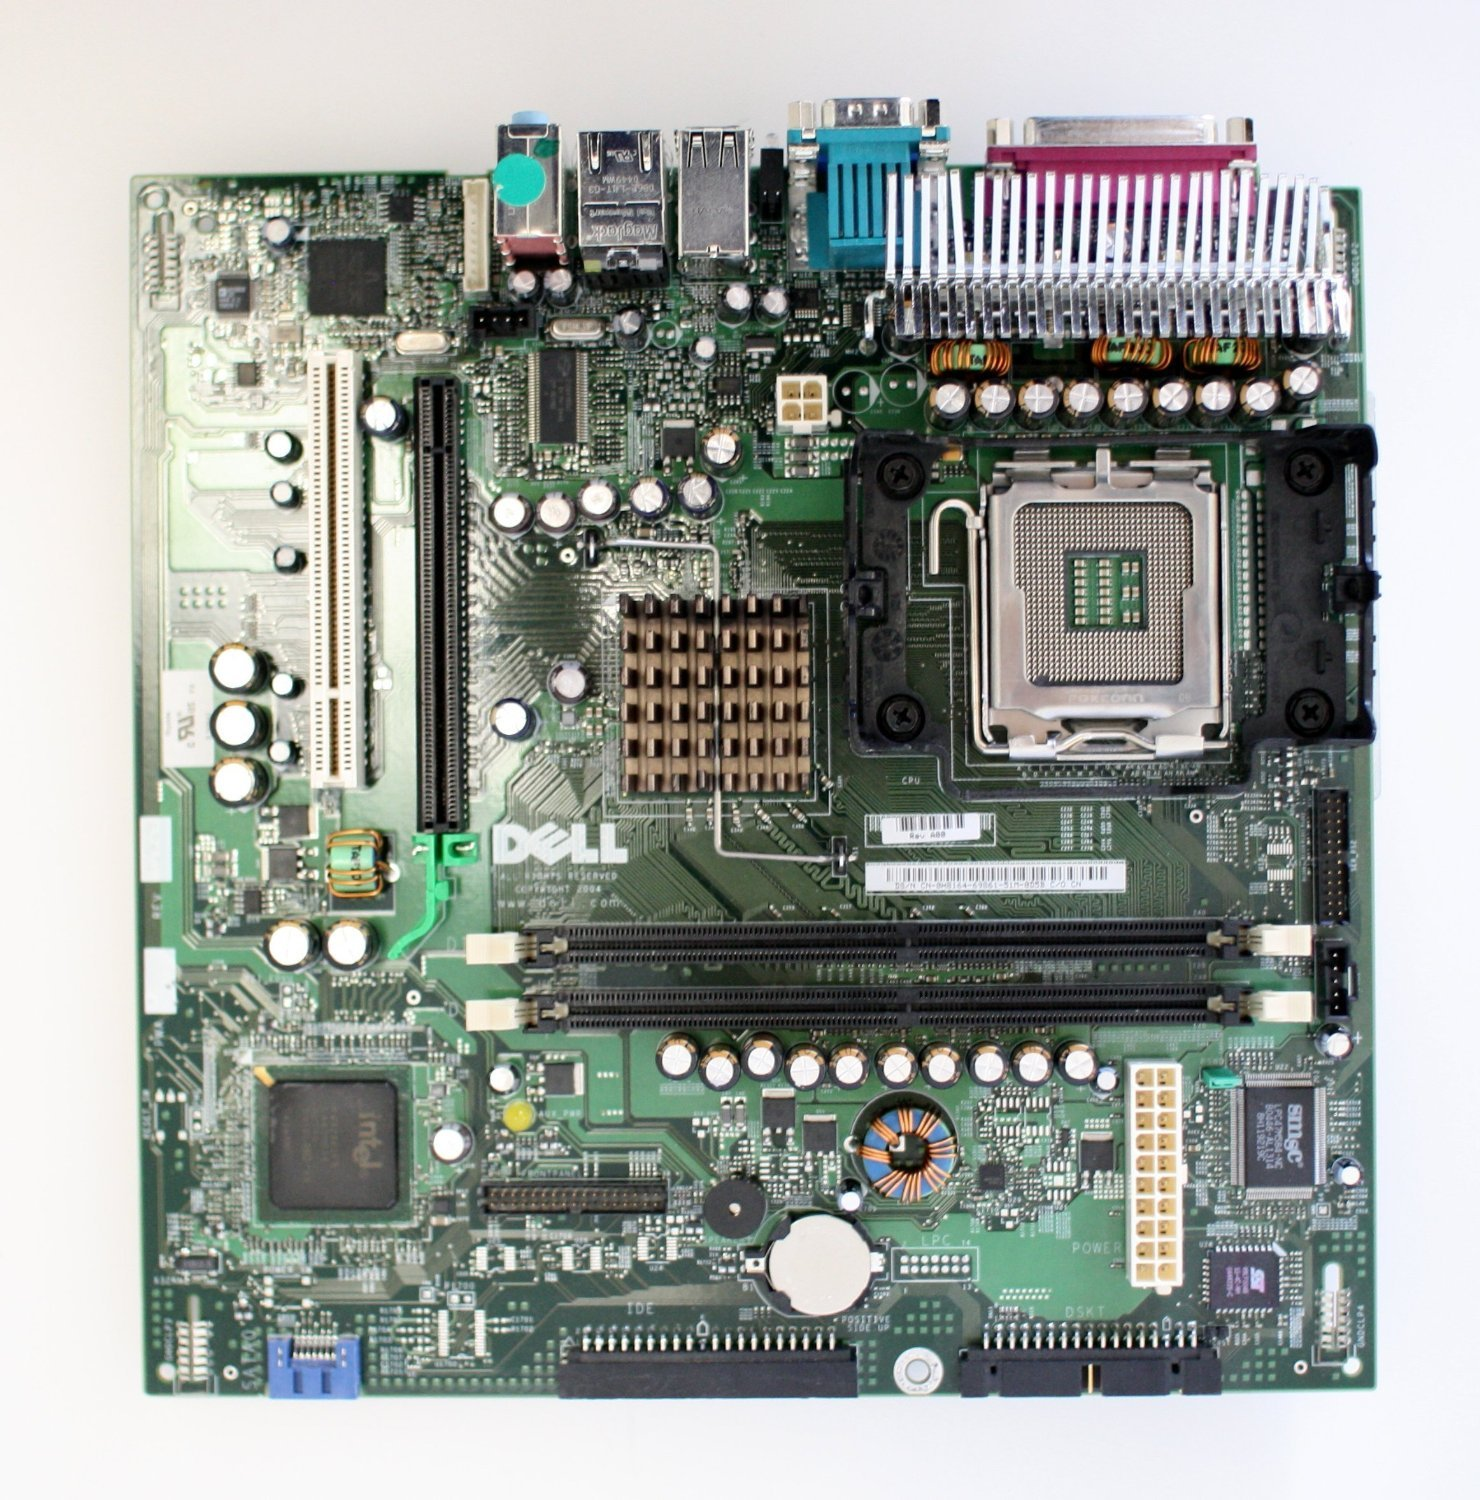 dell gx280 user guide user guide manual that easy to read u2022 rh royalcleaning co Dell Motherboard Replacement Dell Motherboard Diagram